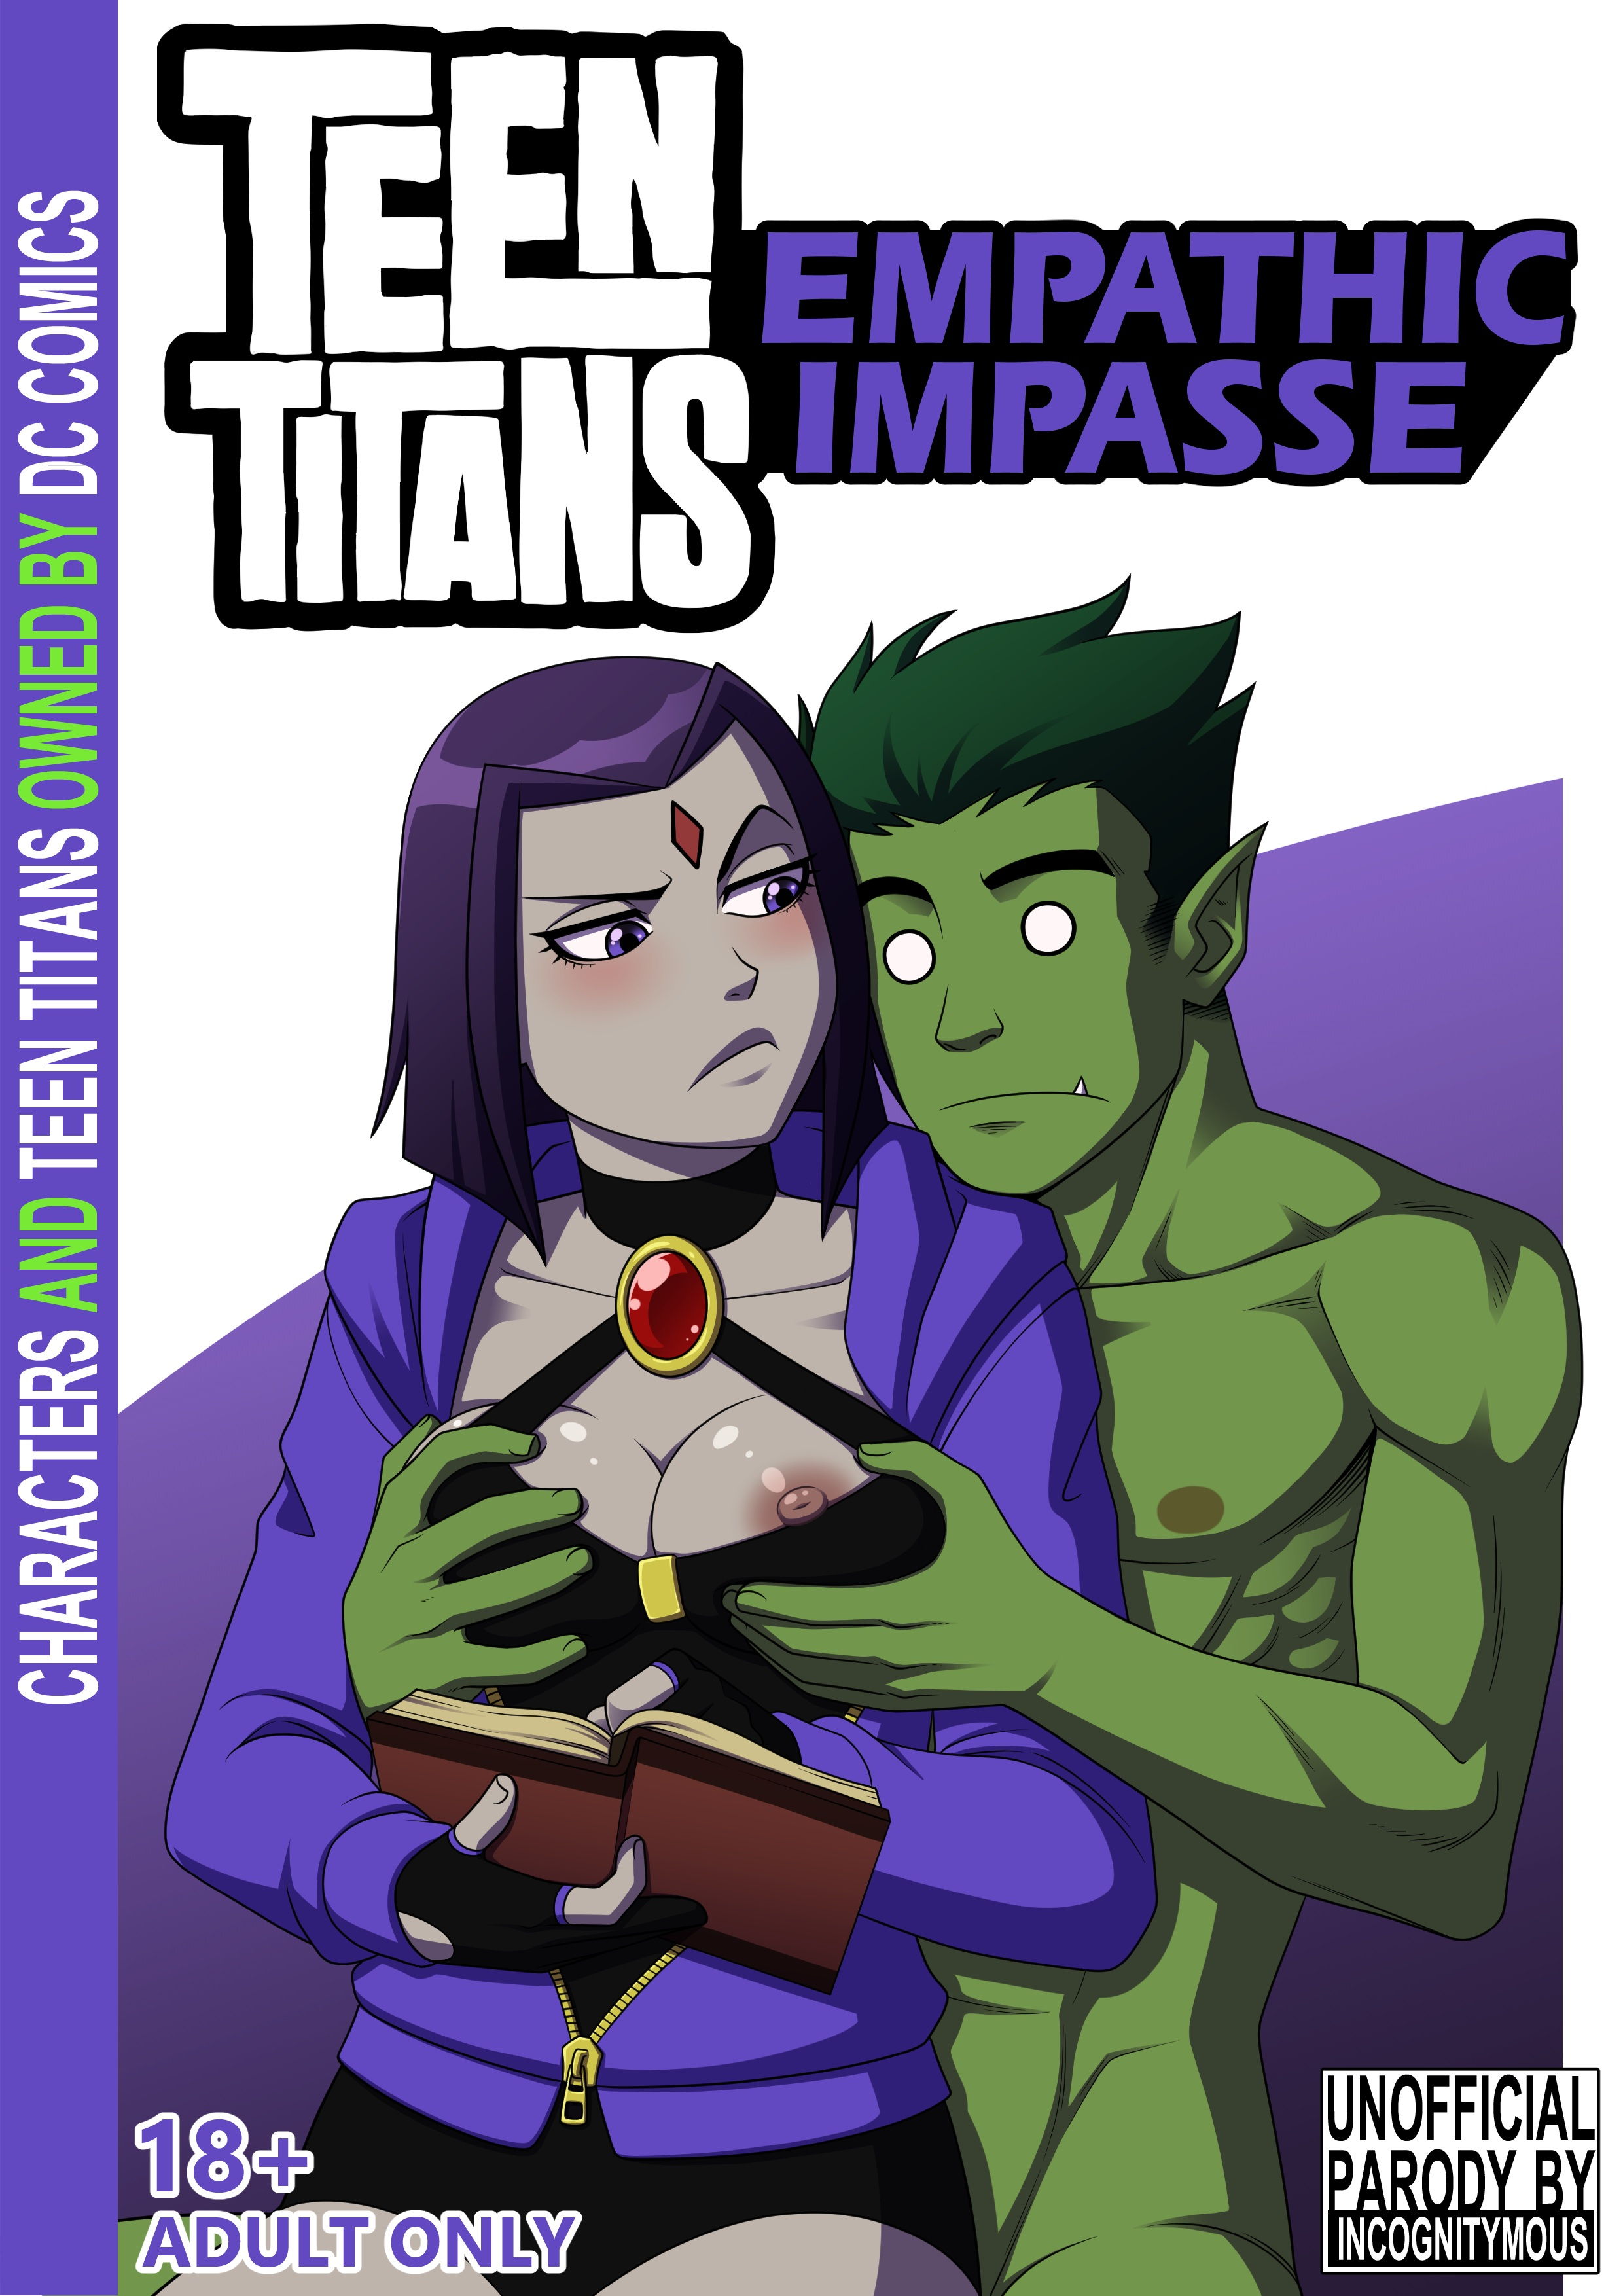 Incognitymous – Empathic Impasse - 15 Pages